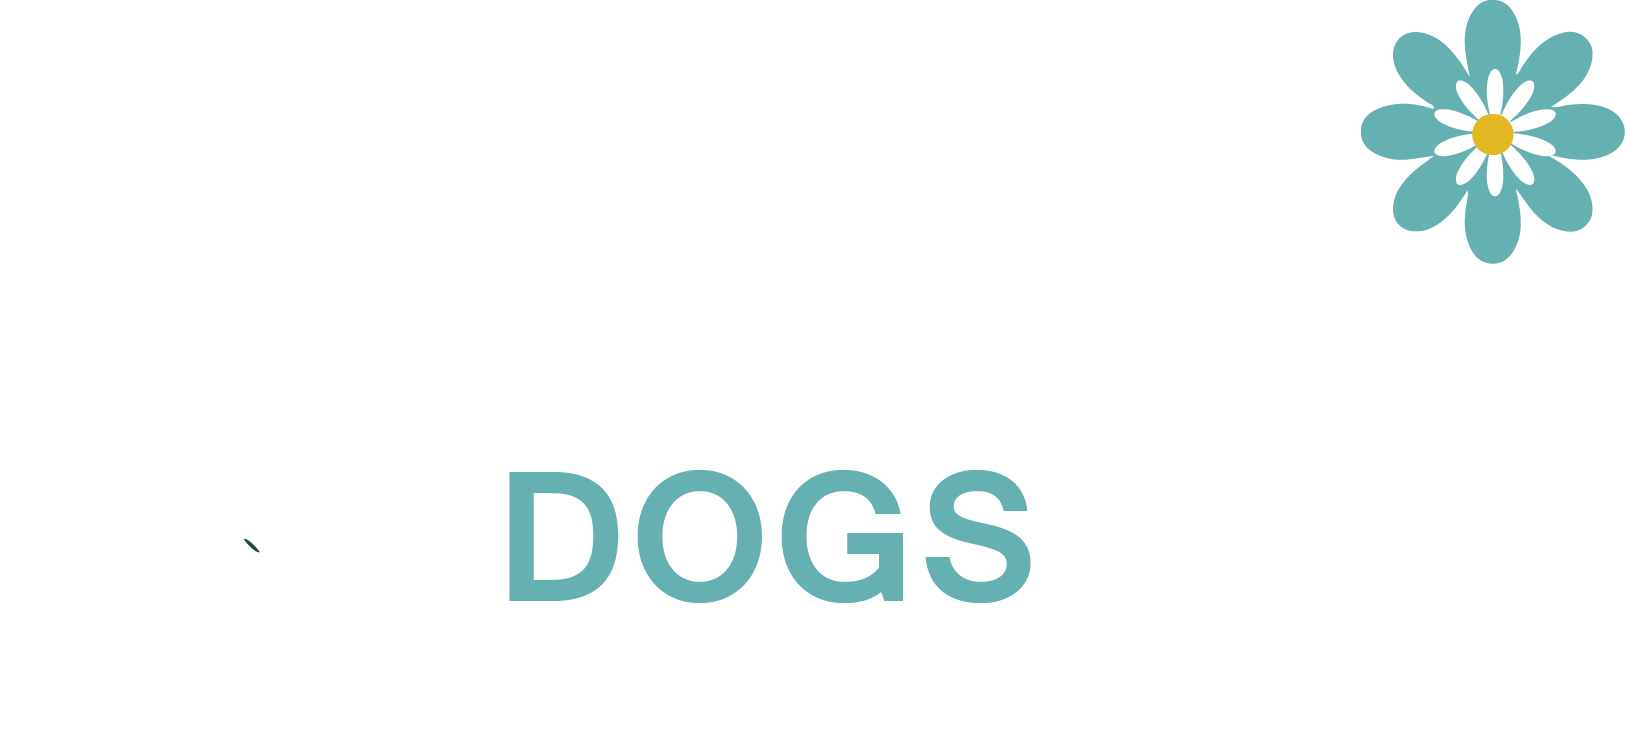 Daisy Dogs Grooming